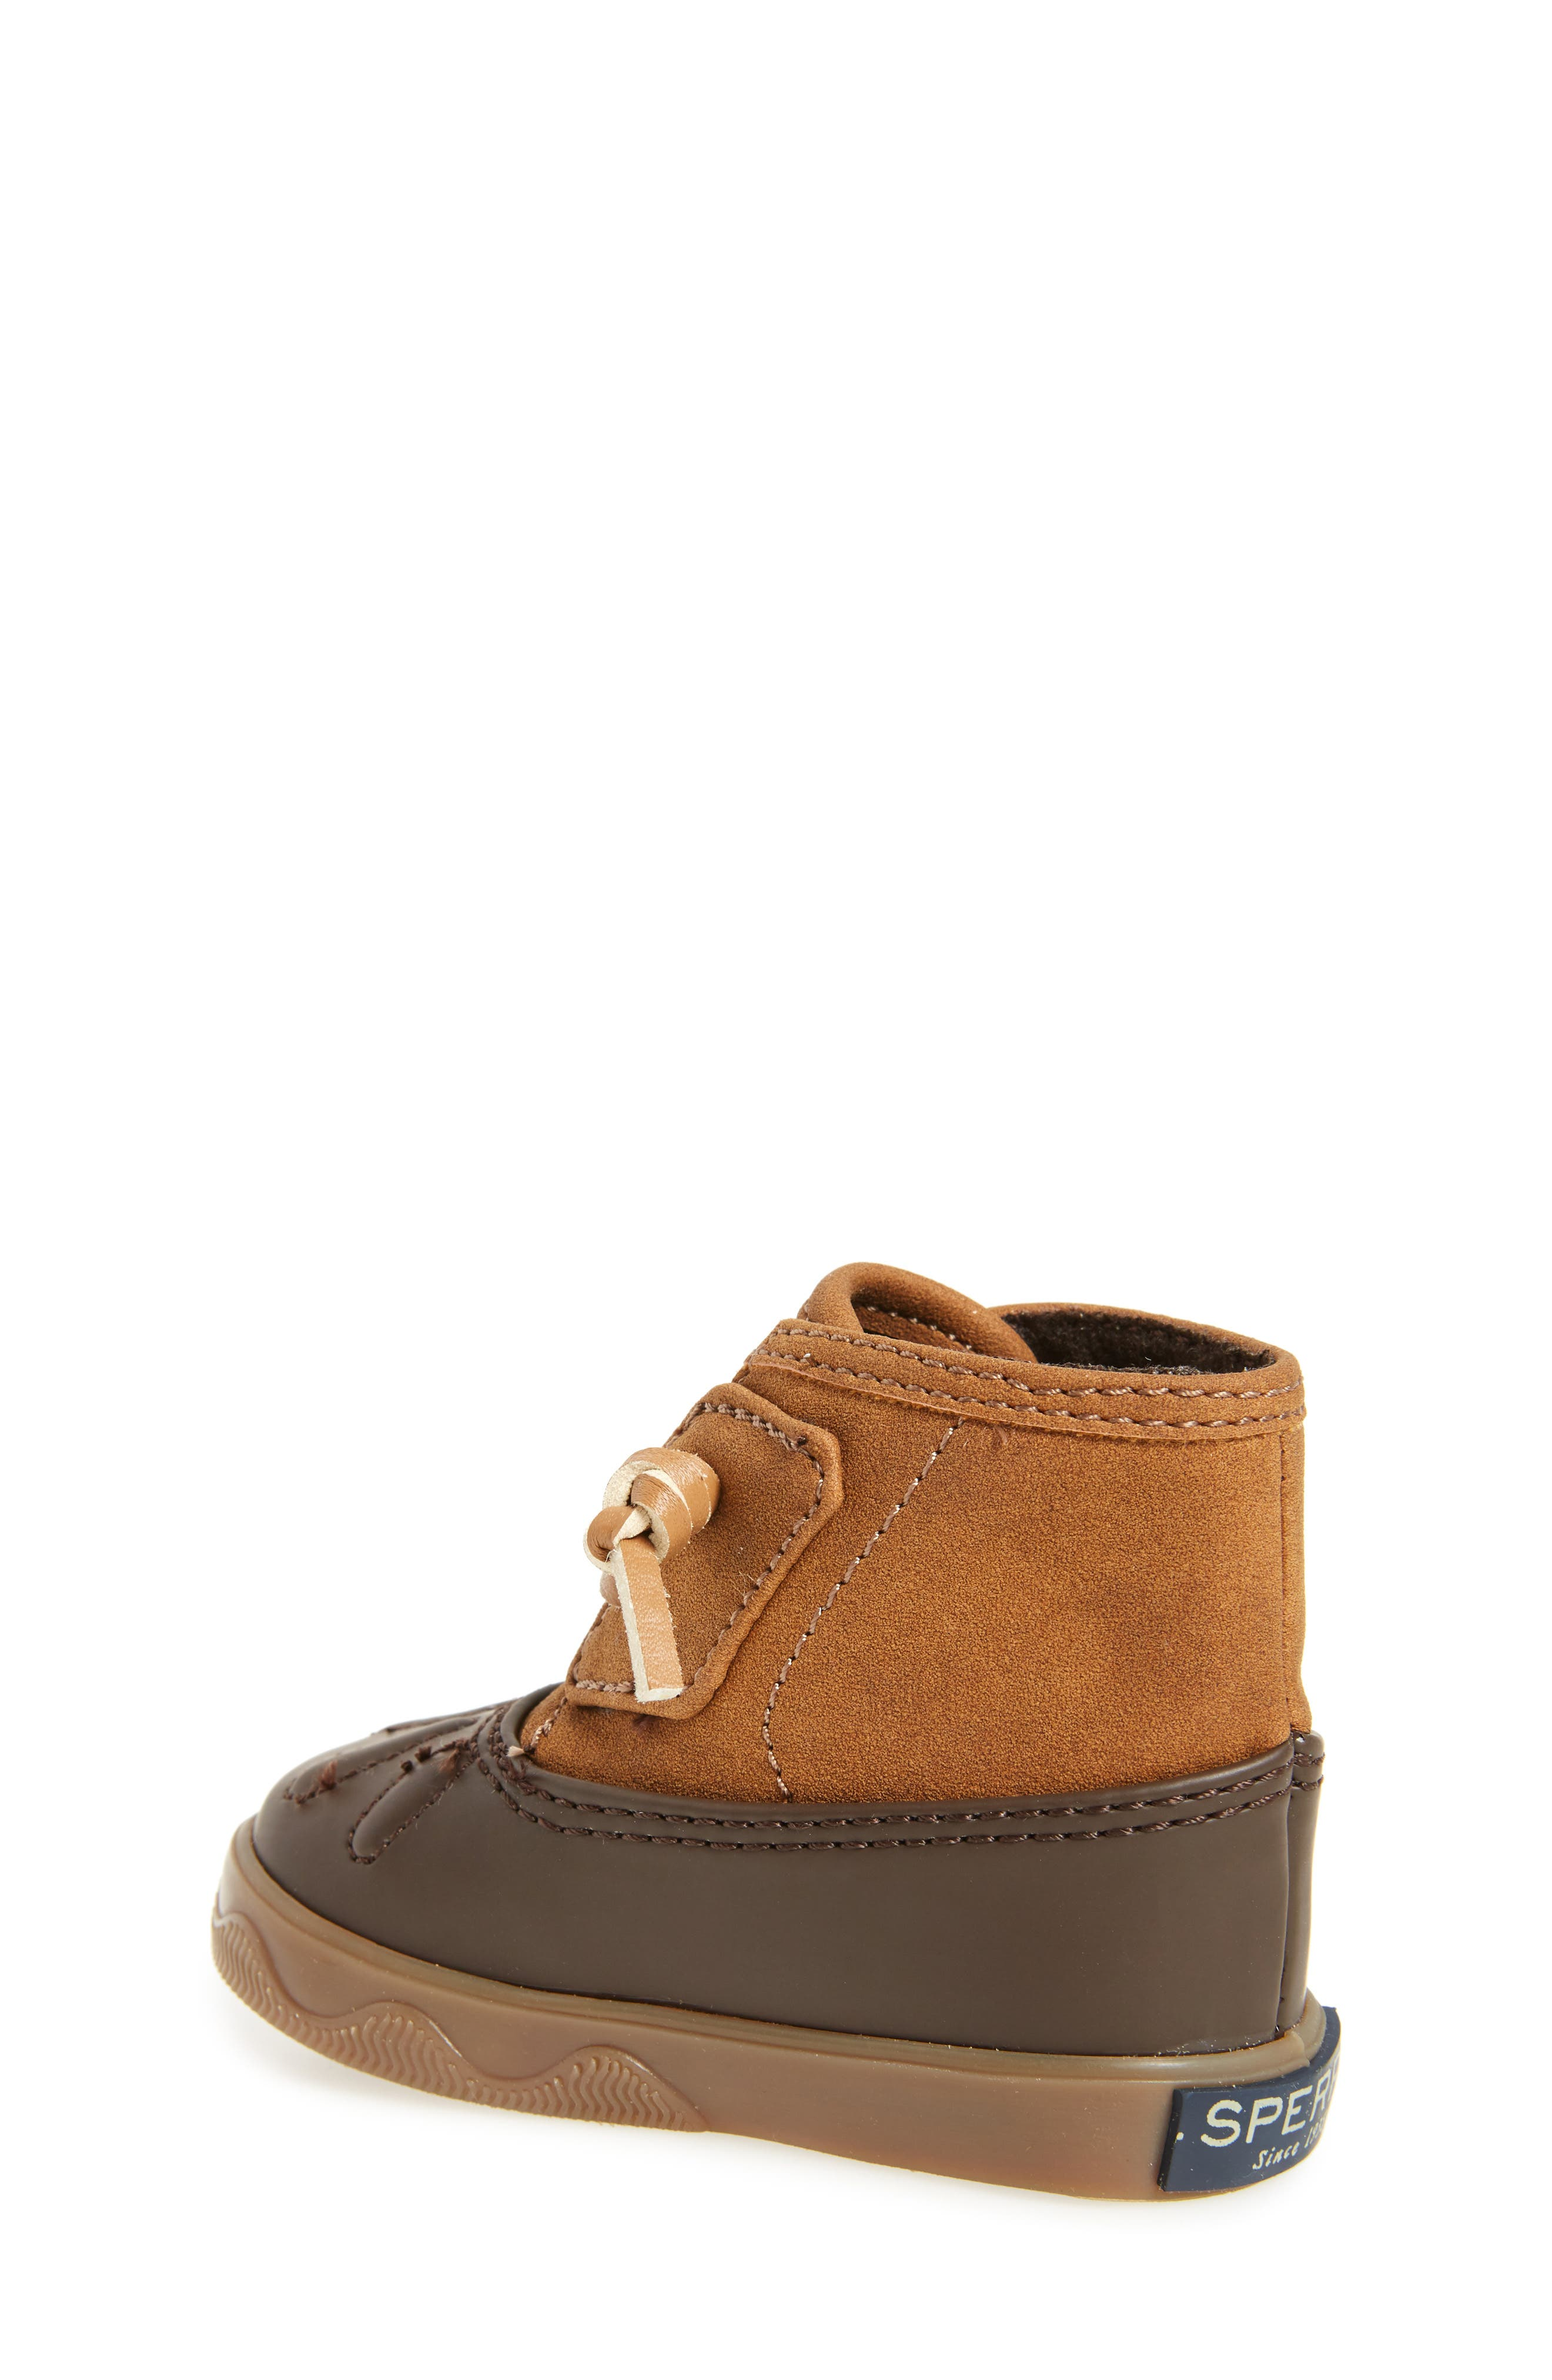 Sperry Icestorm Crib Duck Bootie,                             Alternate thumbnail 2, color,                             TAN/ BROWN